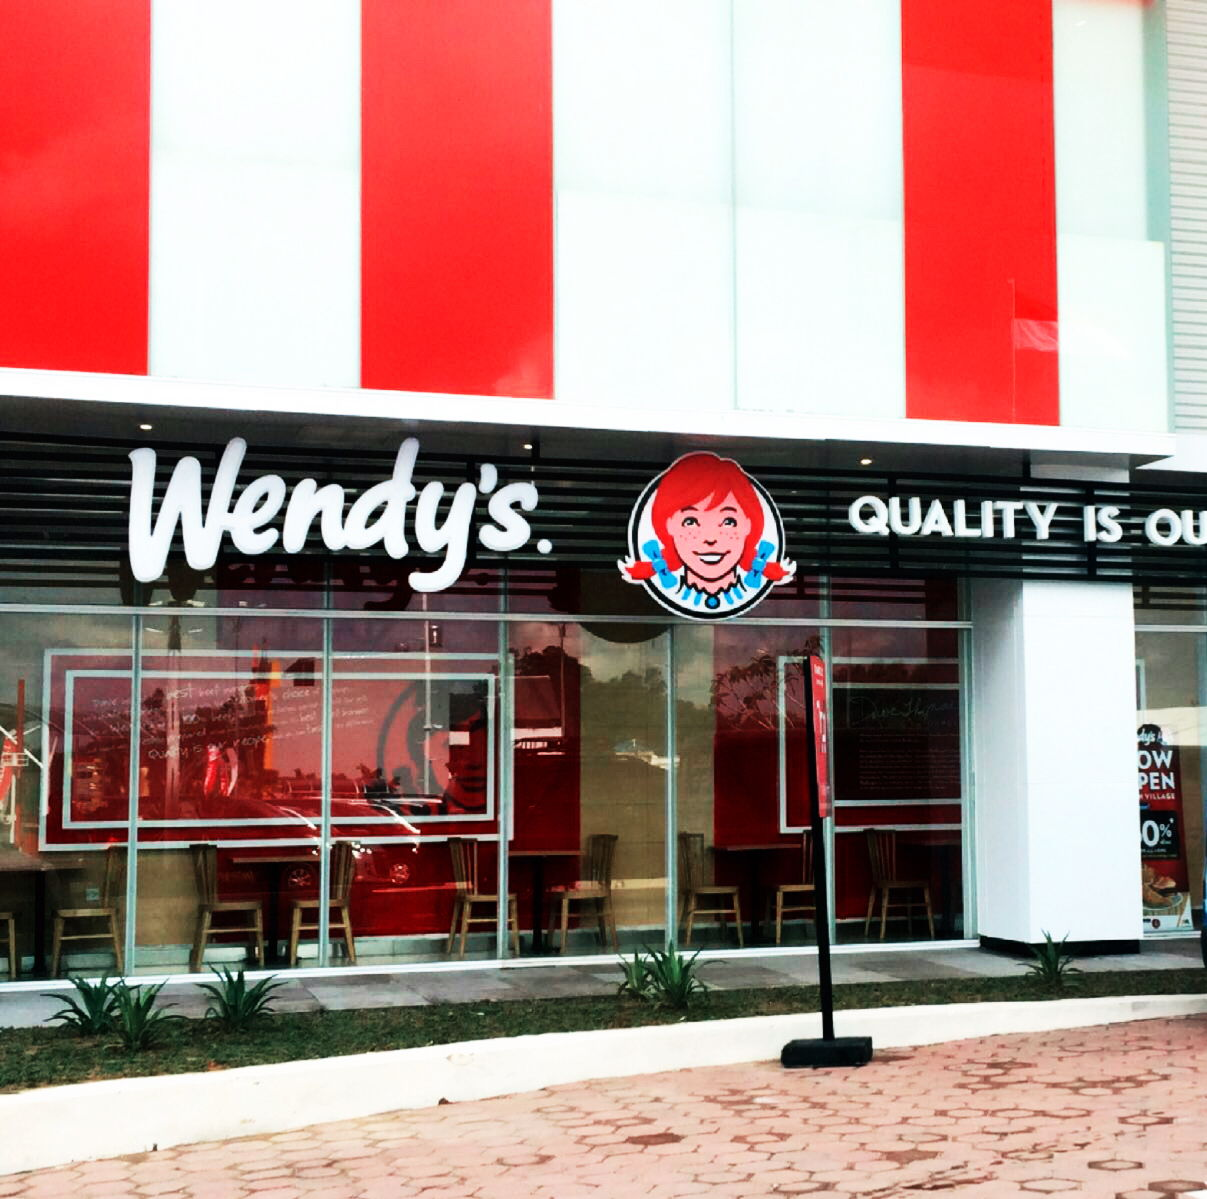 Now Open Wendy's at Daun Village Balikpapan